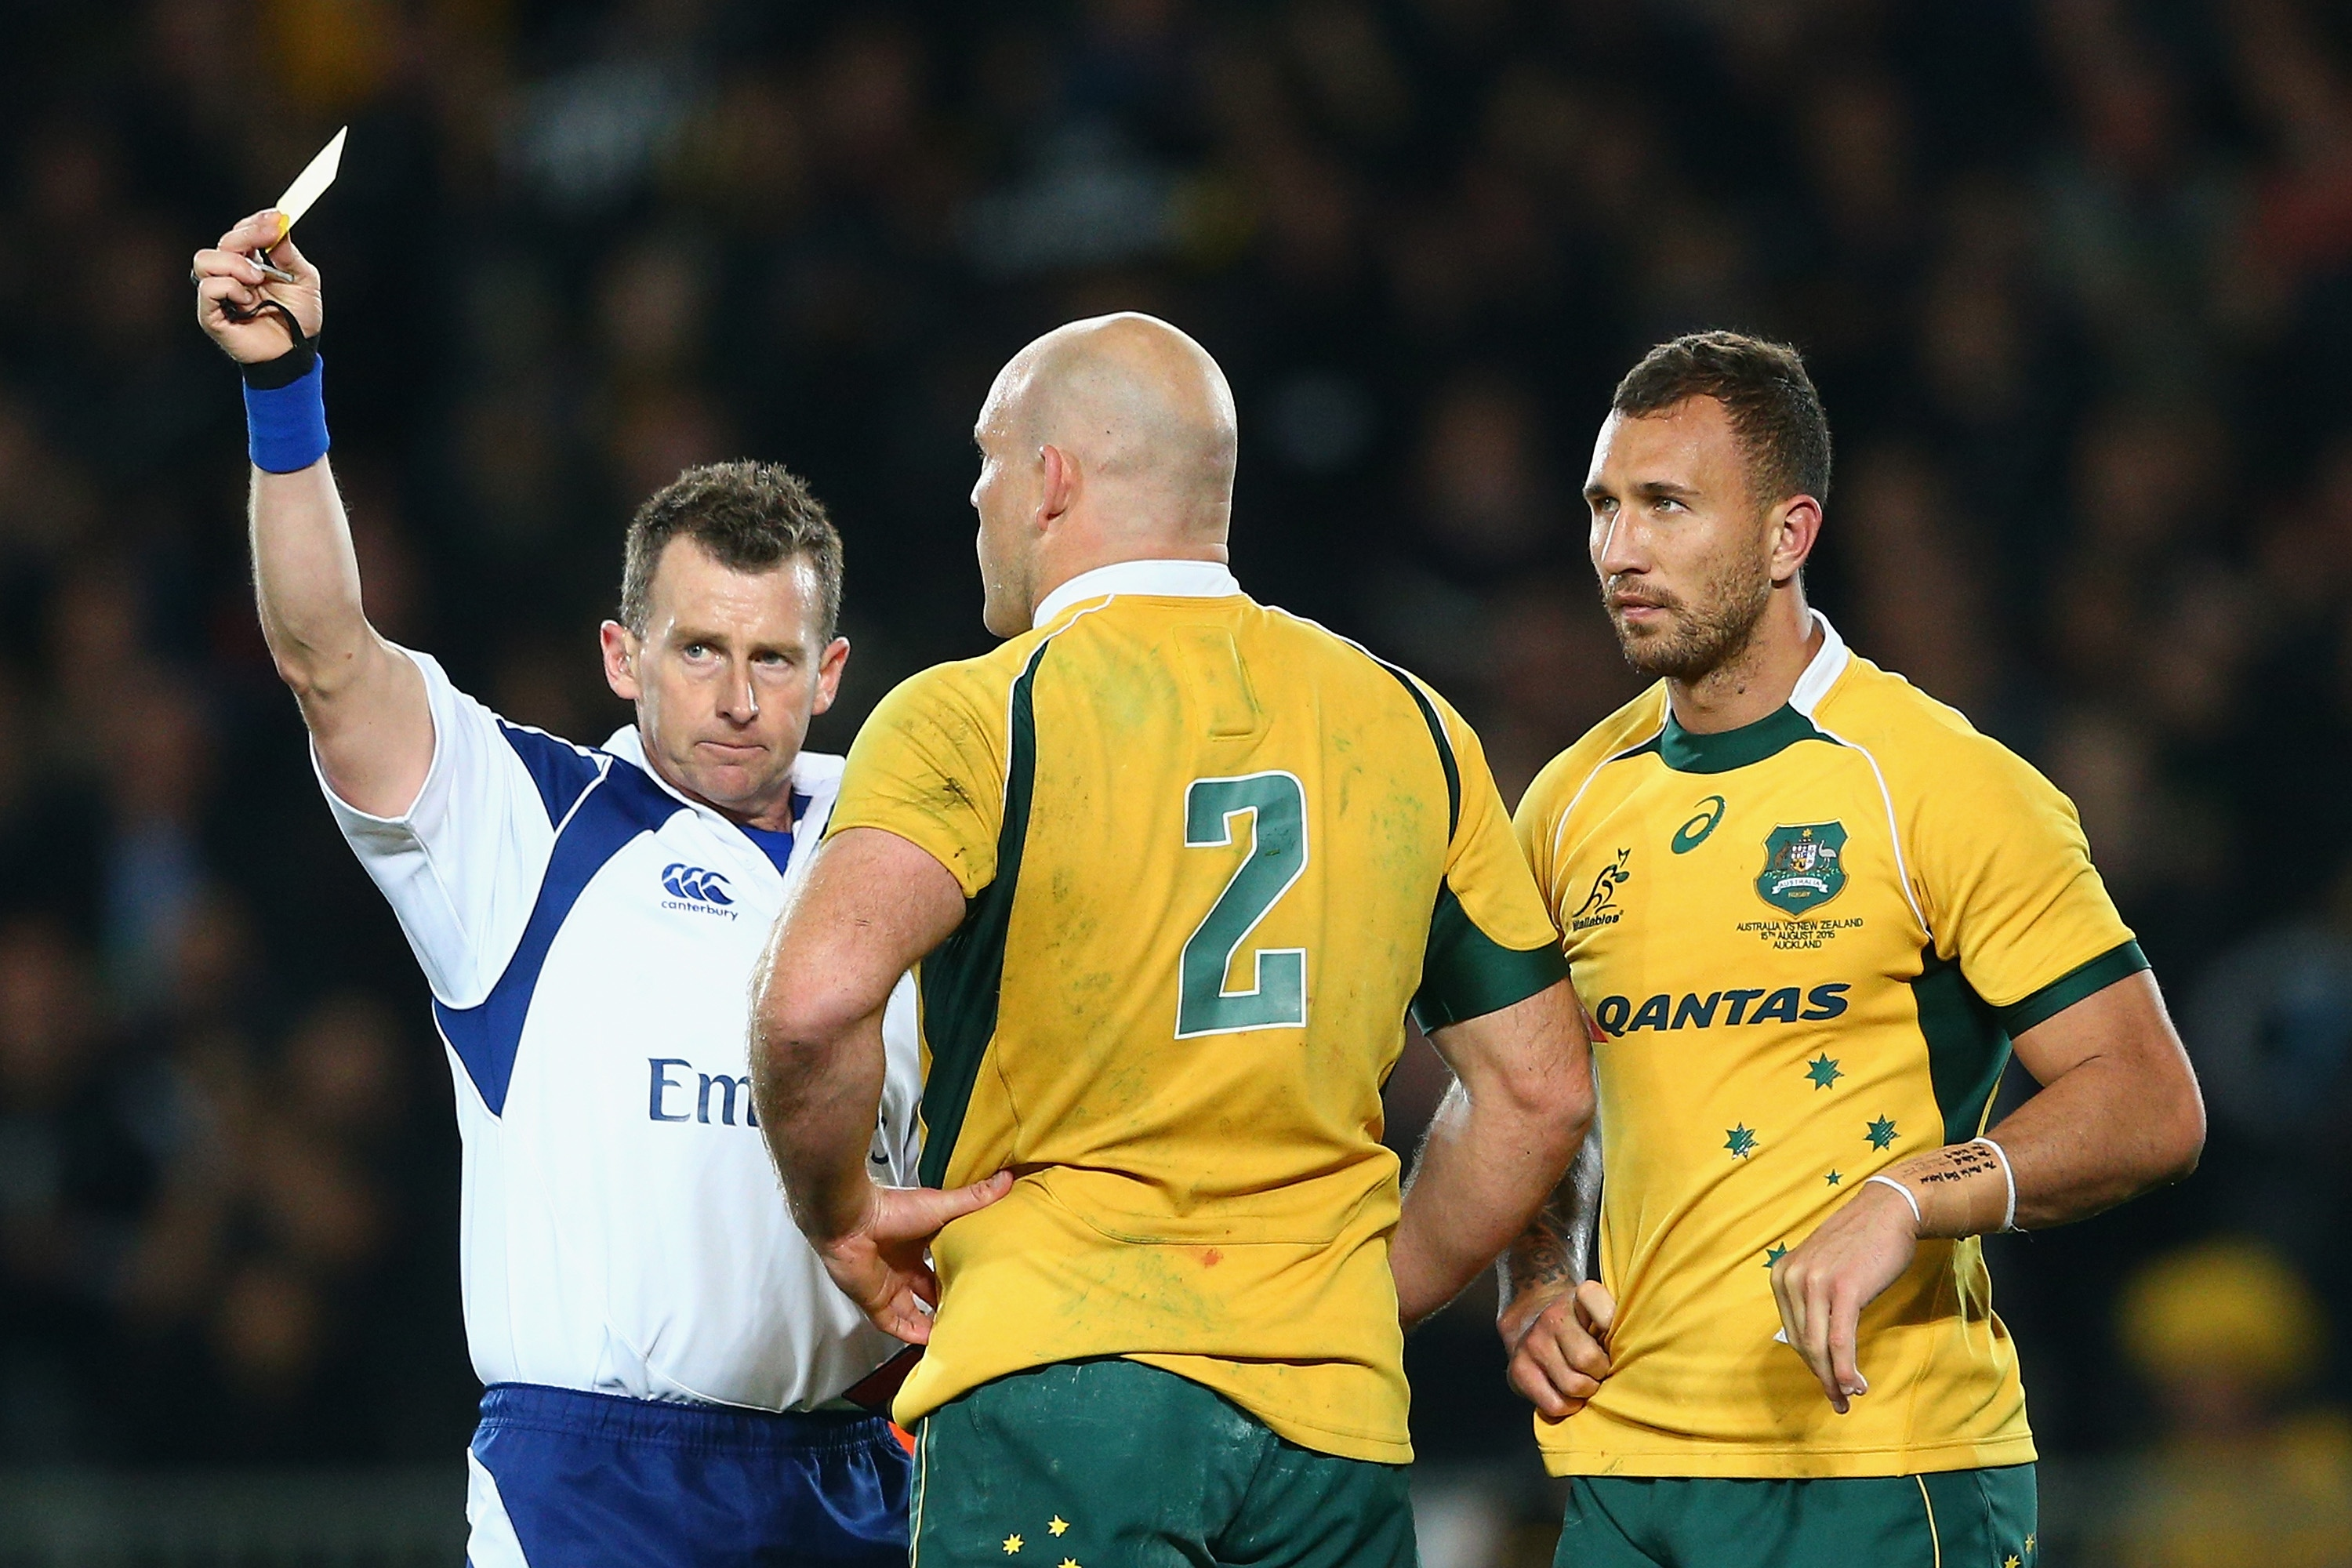 AUCKLAND, NEW ZEALAND - AUGUST 15: Referee Nigel Owens sends off Quade Cooper of the Wallabies with a yellow card during The Rugby Championship, Bledisloe Cup match between the New Zealand All Blacks and the Australian Wallabies at Eden Park on August 15, 2015 in Auckland, New Zealand. (Photo by Cameron Spencer/Getty Images)